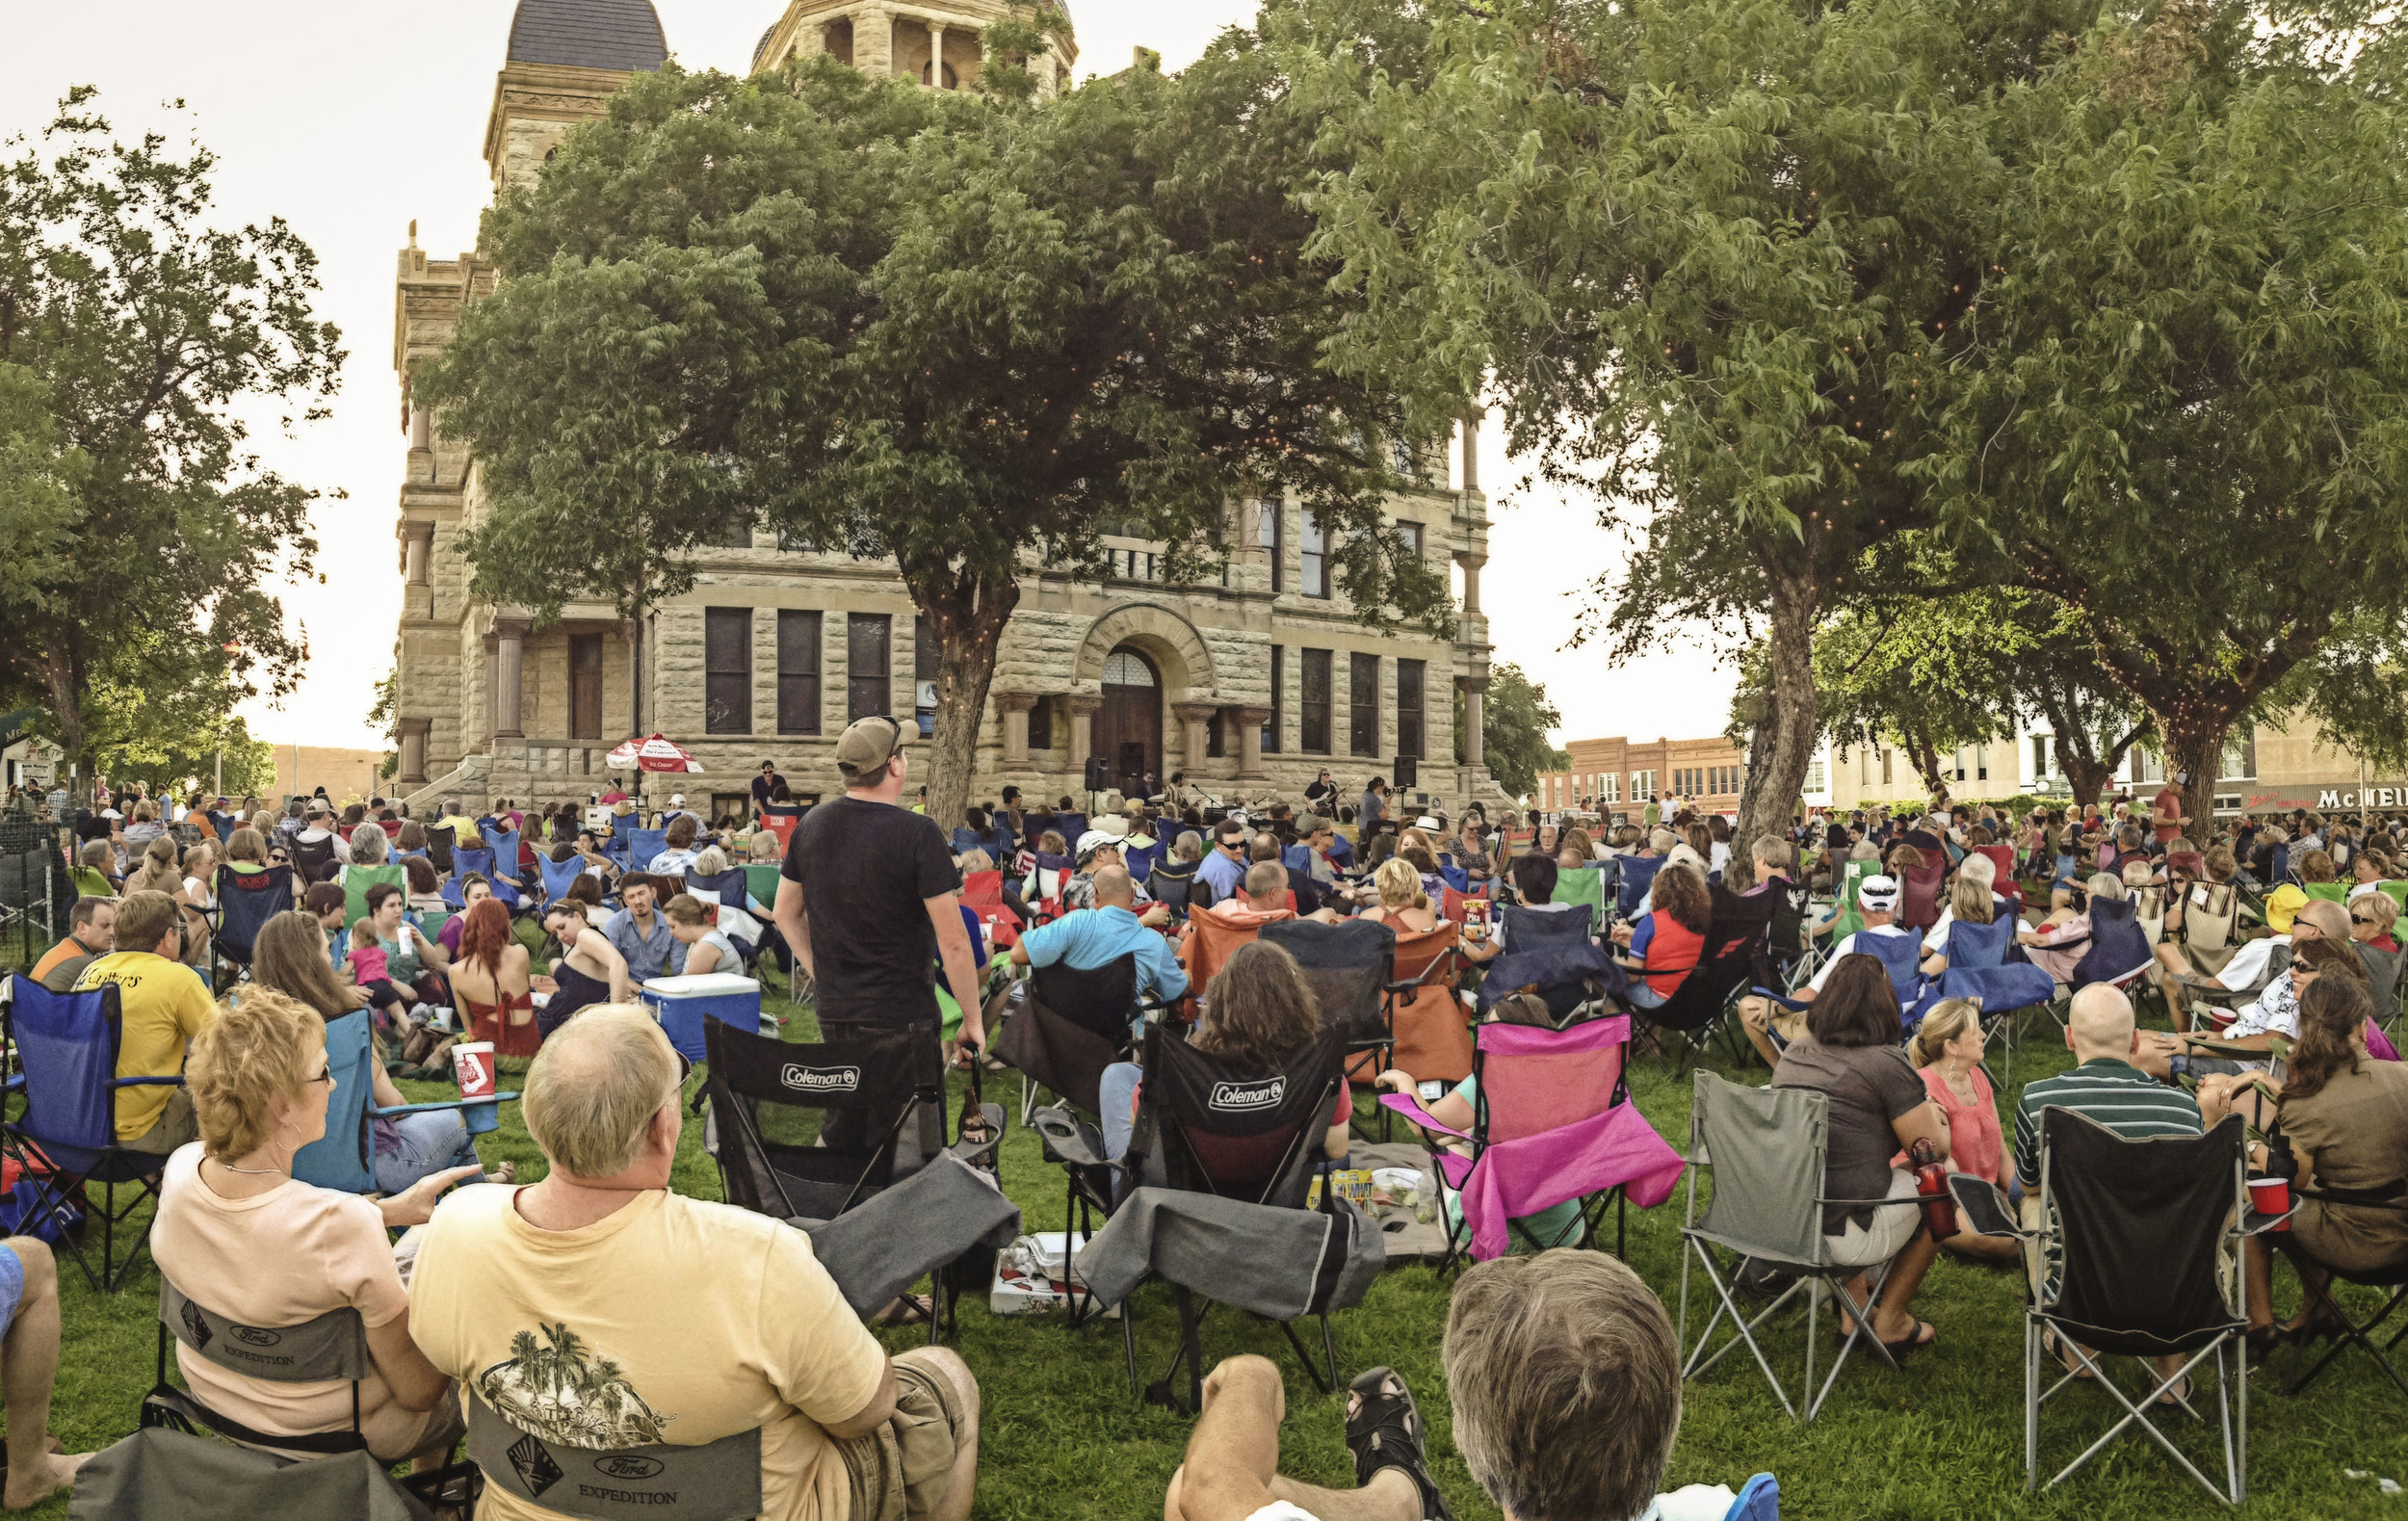 Twilight Tunes drew a big crowd to the square last Thursday as The Fun Addix covered lots of old tunes.